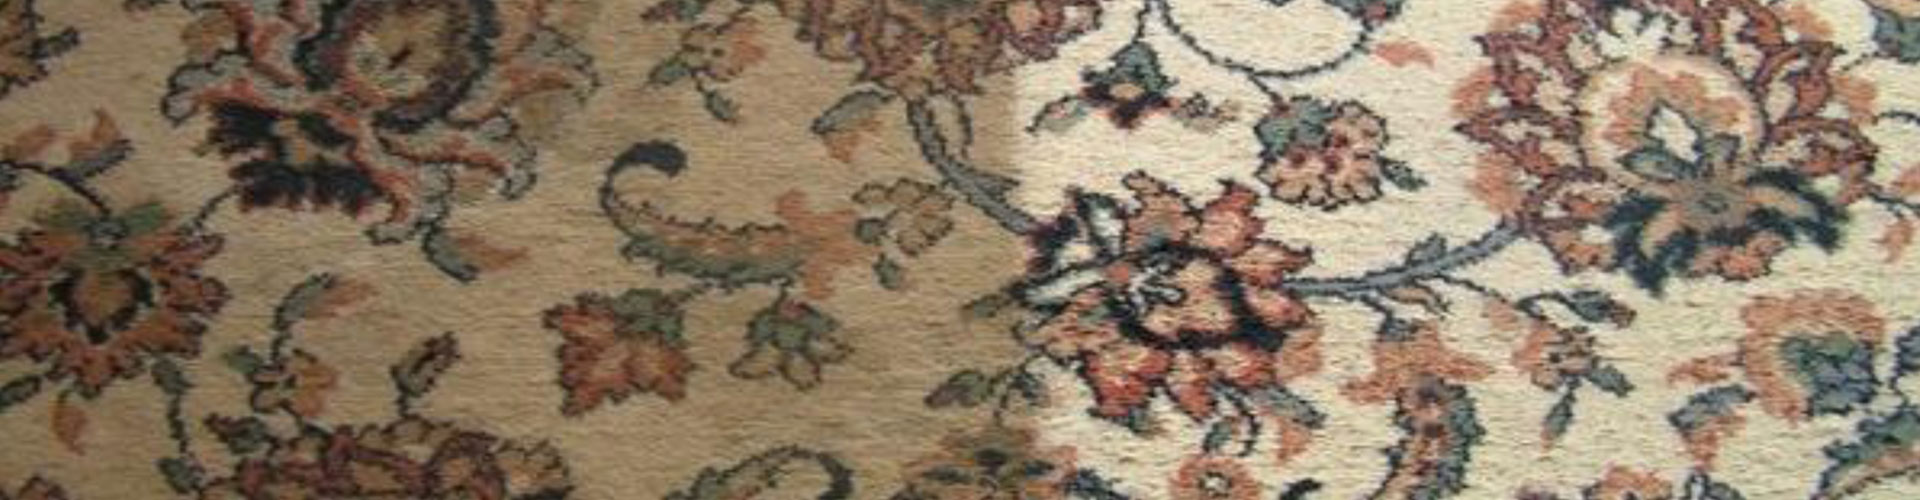 Is Your Oriental Rug Keeping Dirty Little Secrets?